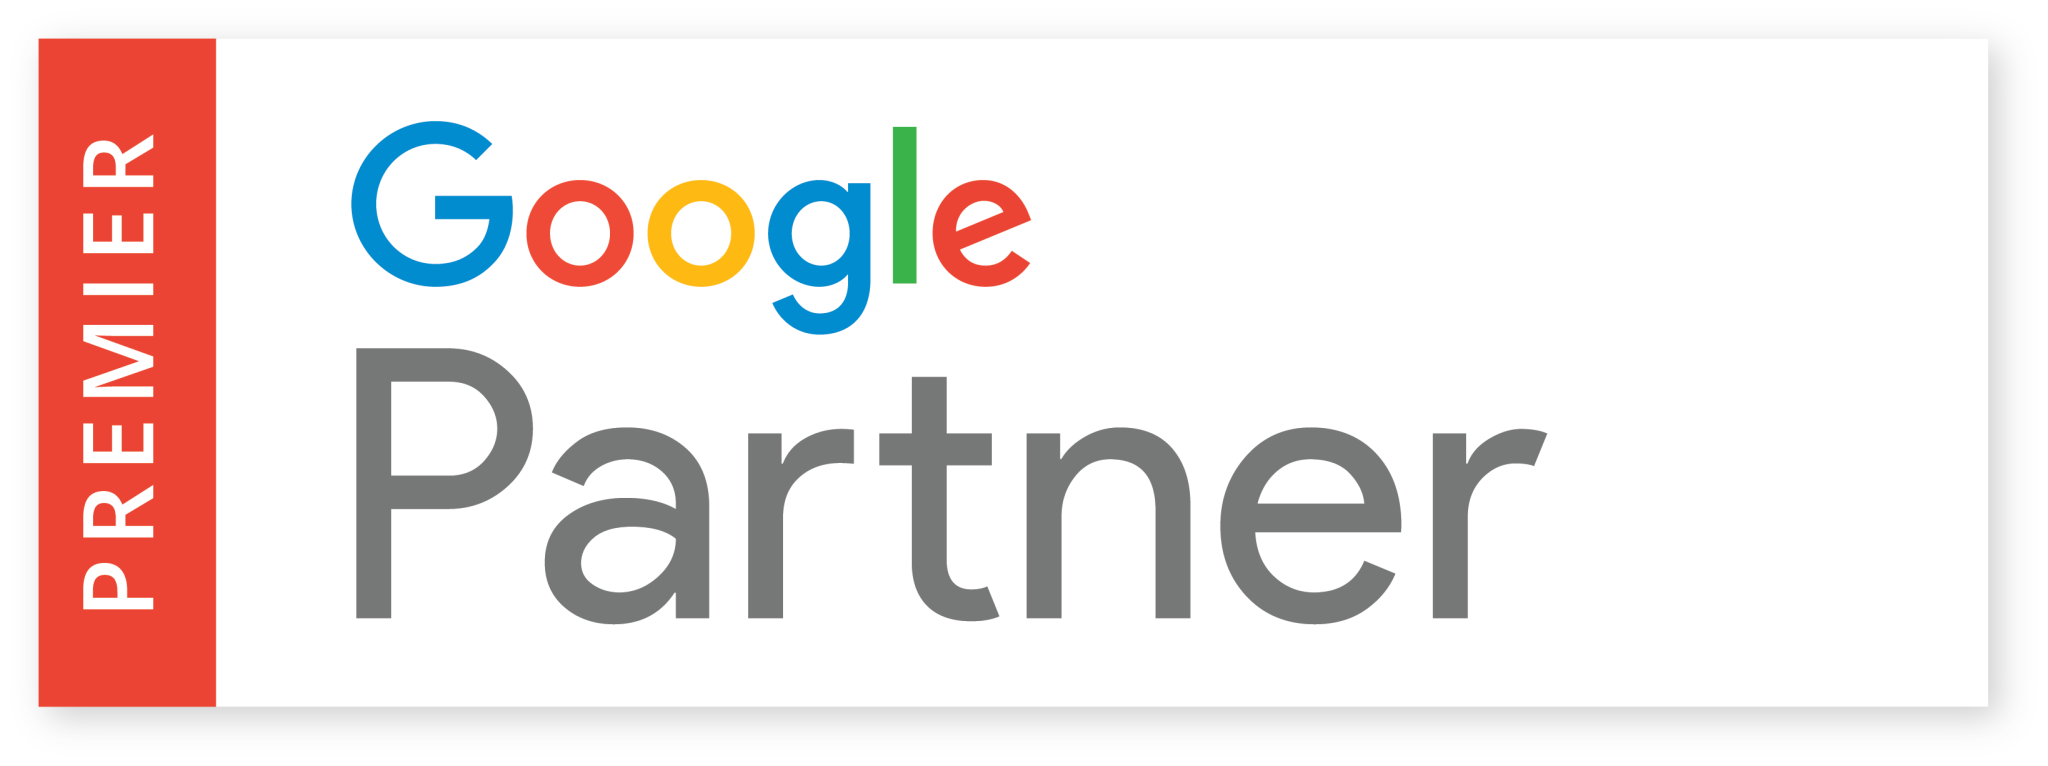 Google partner badge png. Search scientist becomes a